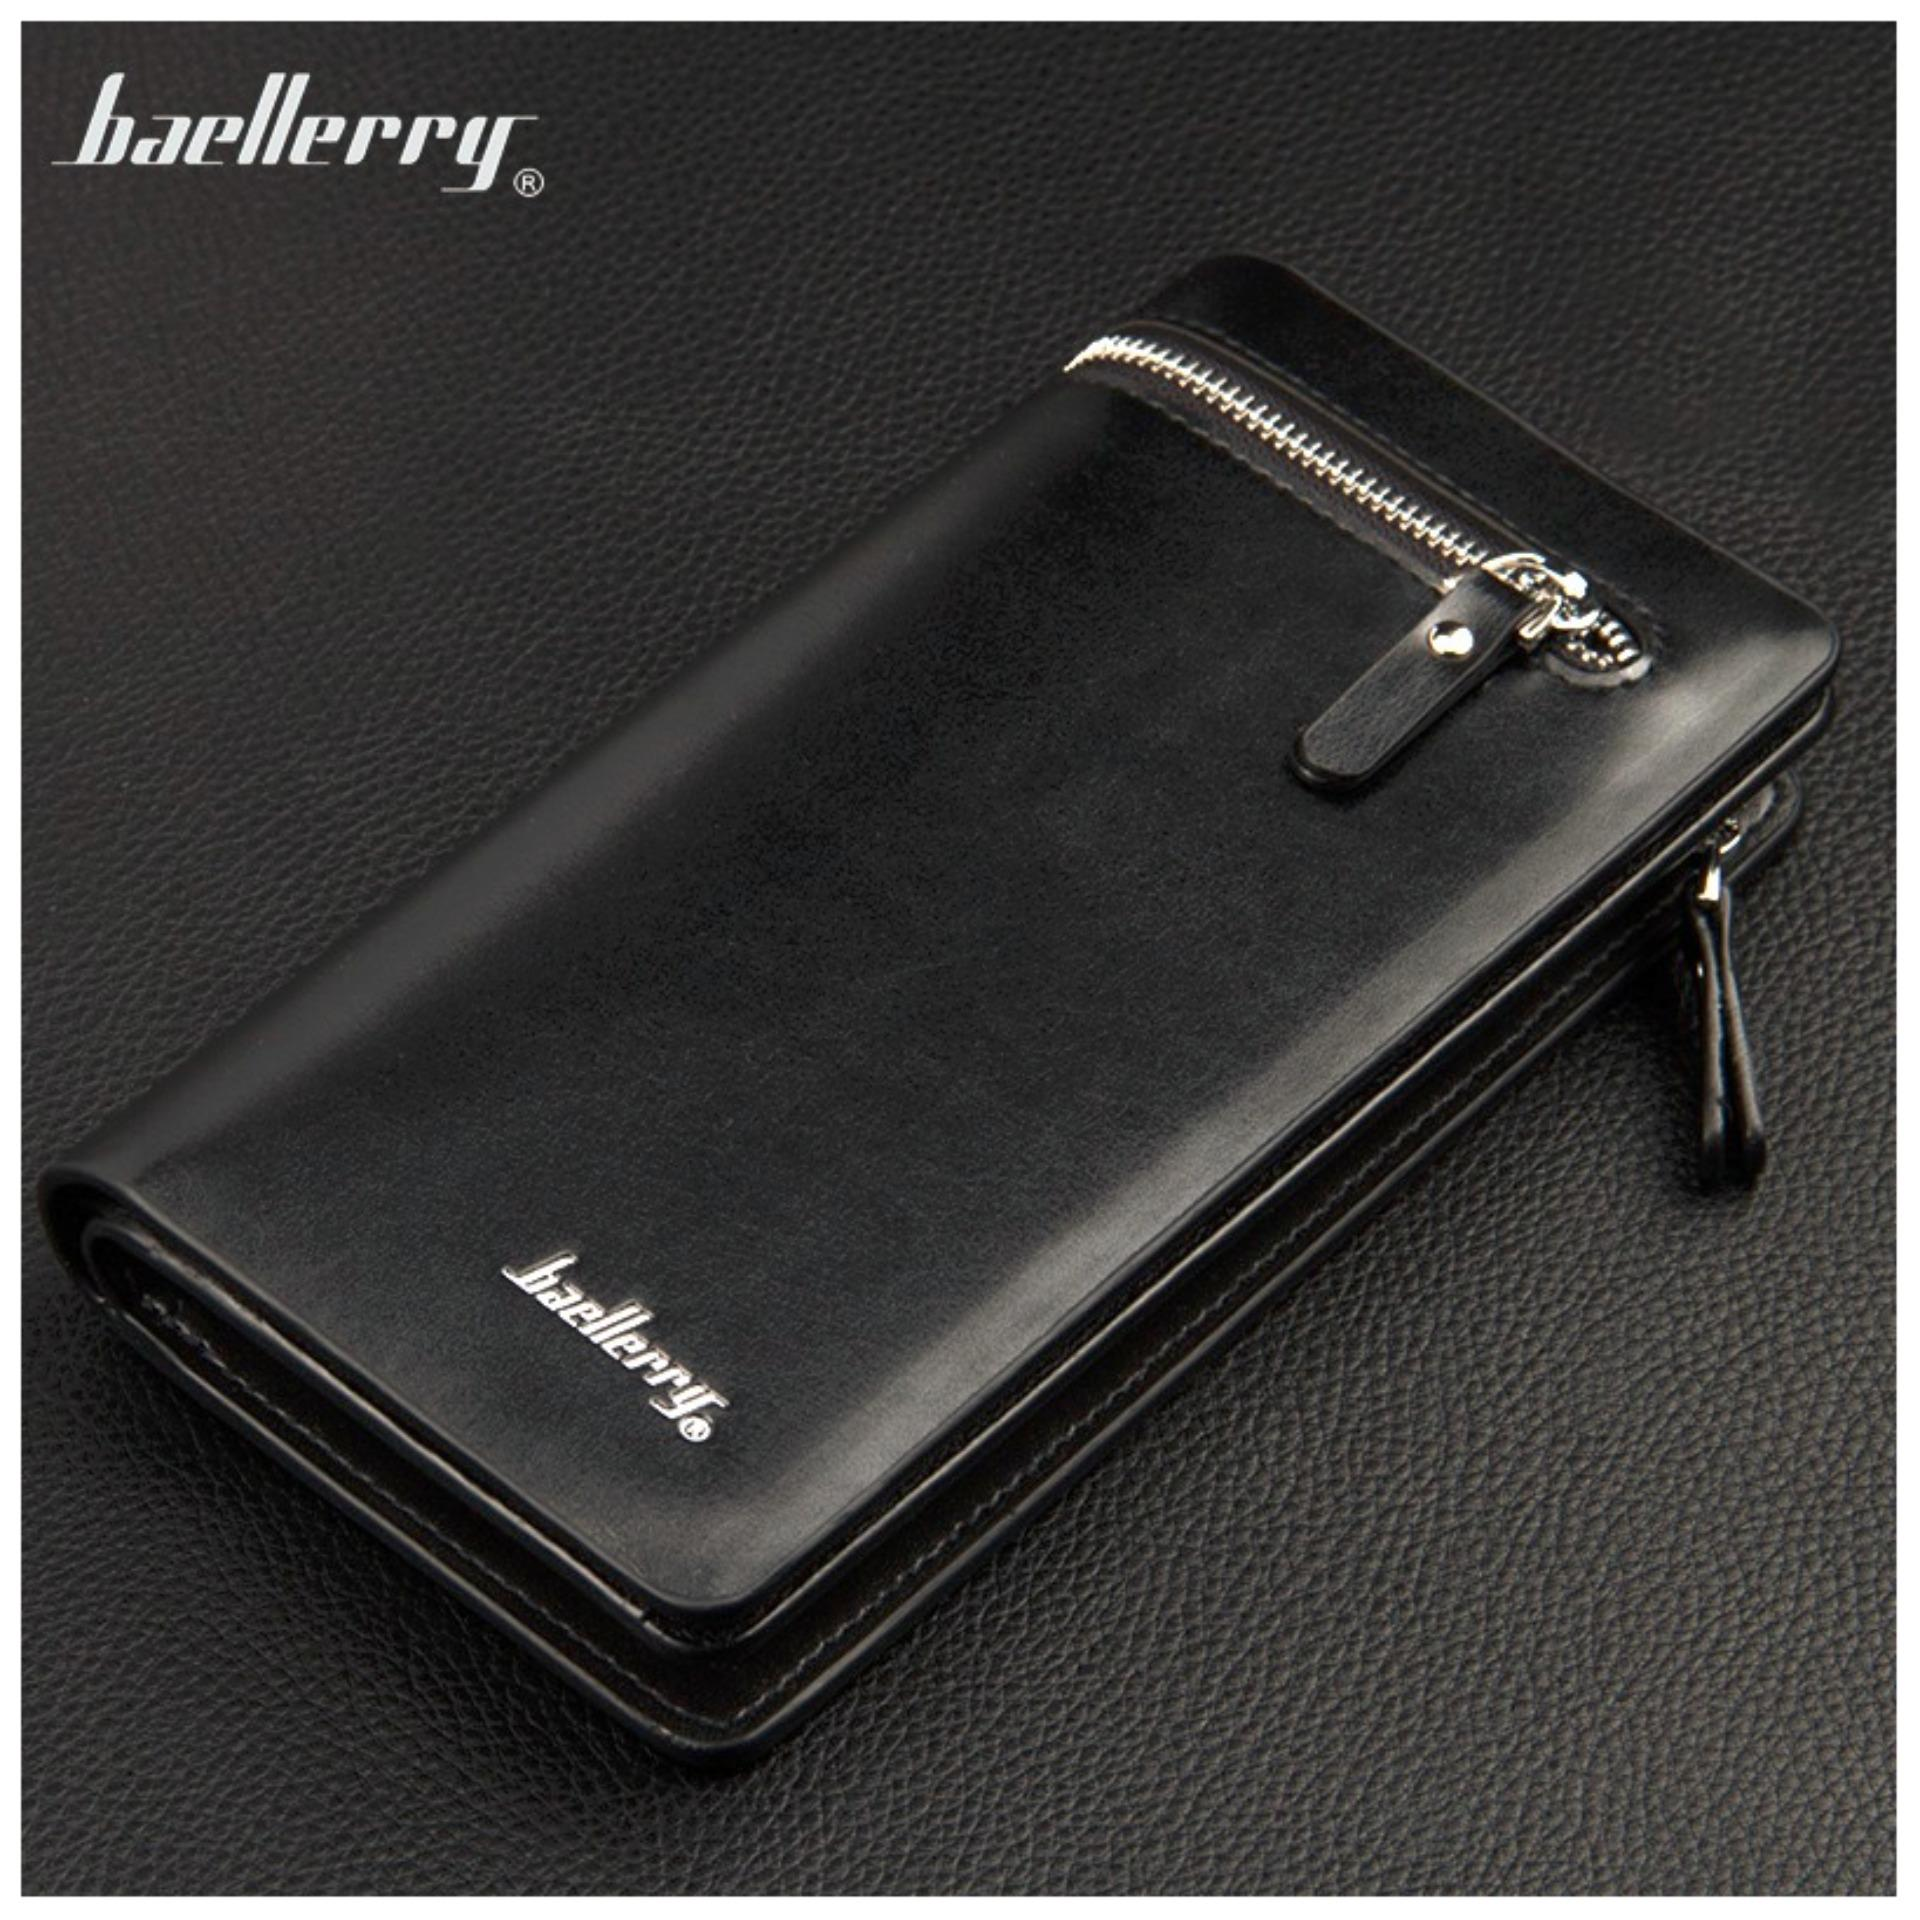 Baellerry Dompet Pria Fashion Import PU leather business long wallet with zipper - Hitam